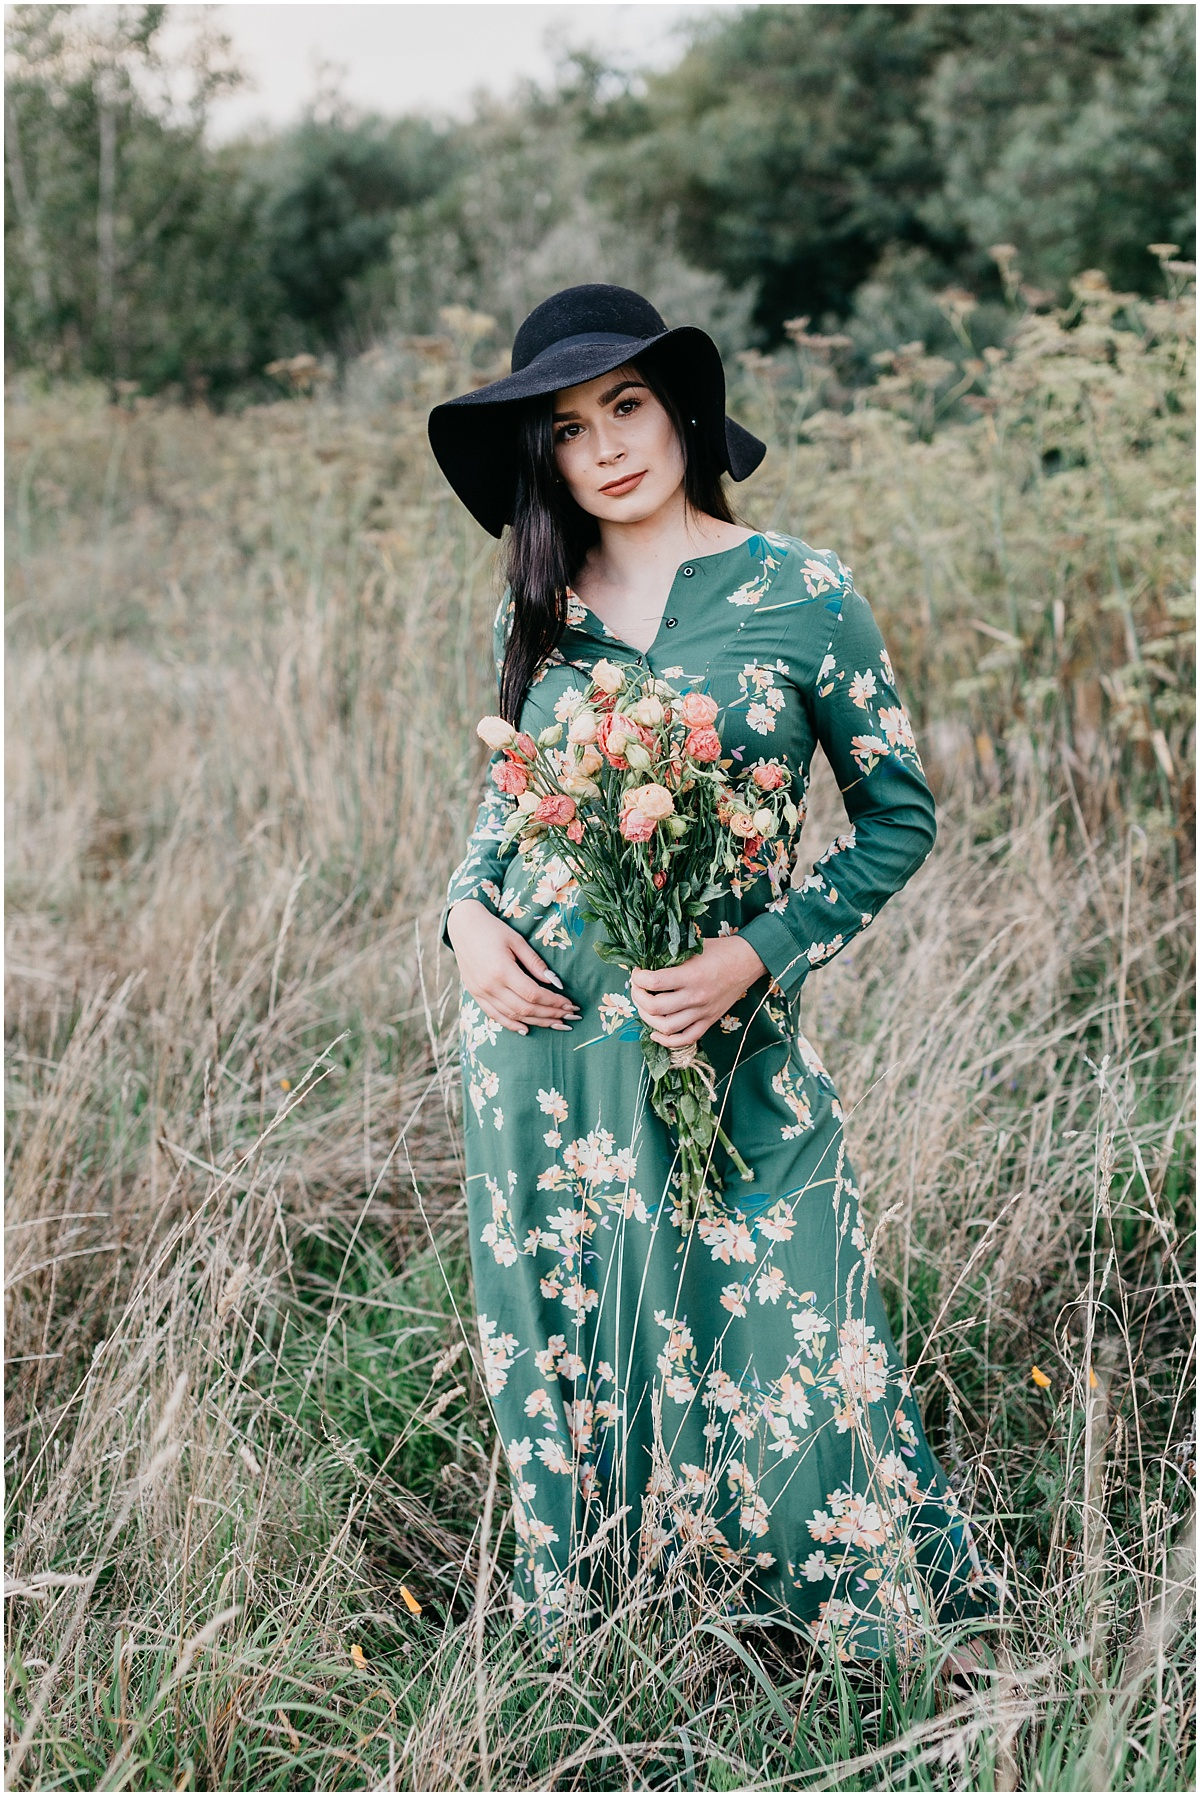 girl in green dress with flowers in grass